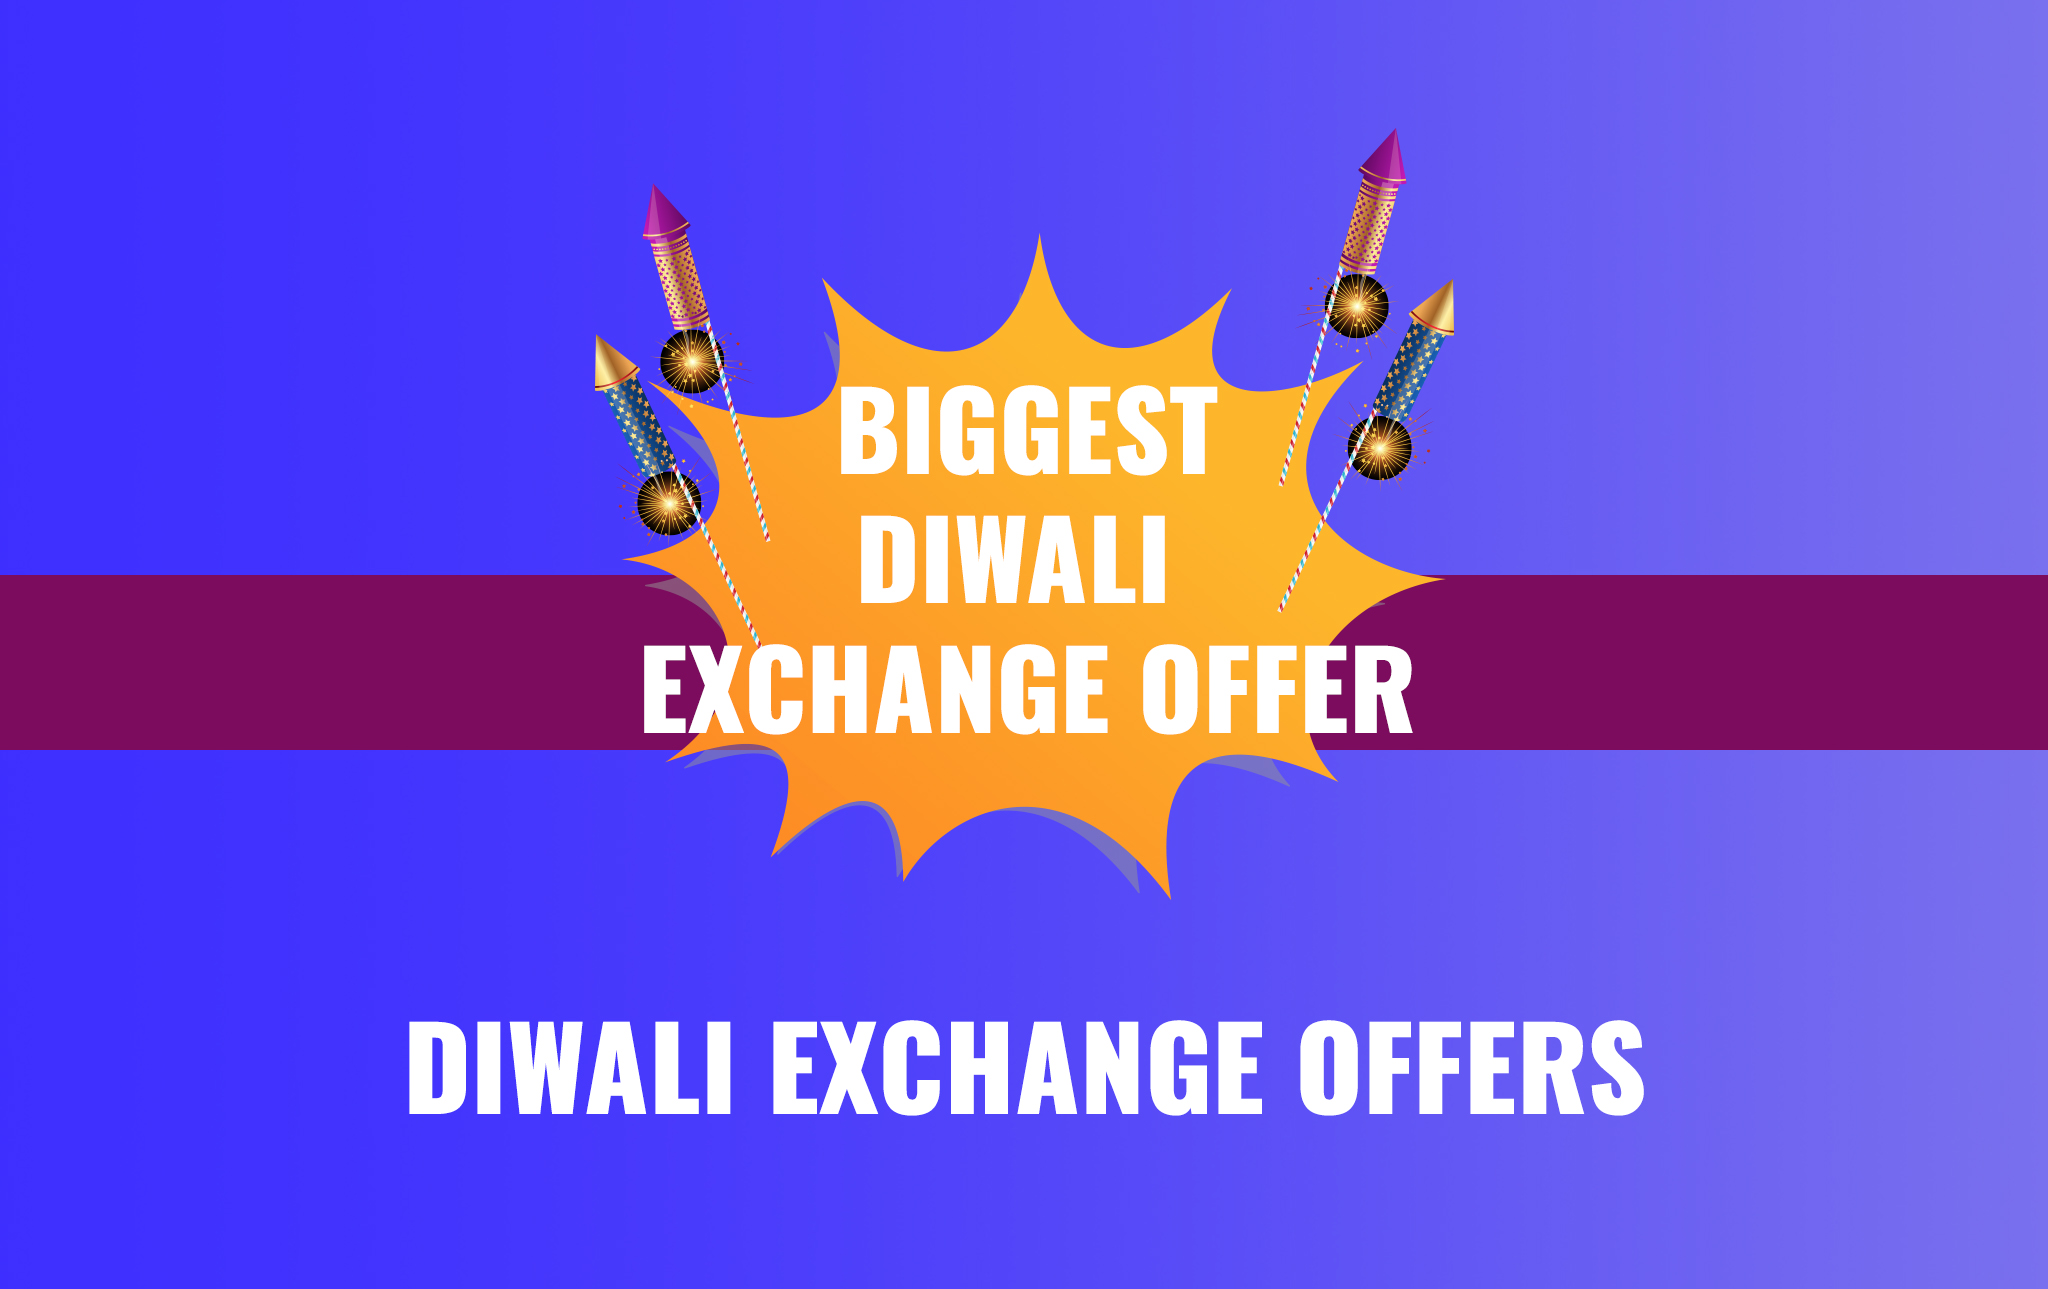 Diwali Exchange Offers